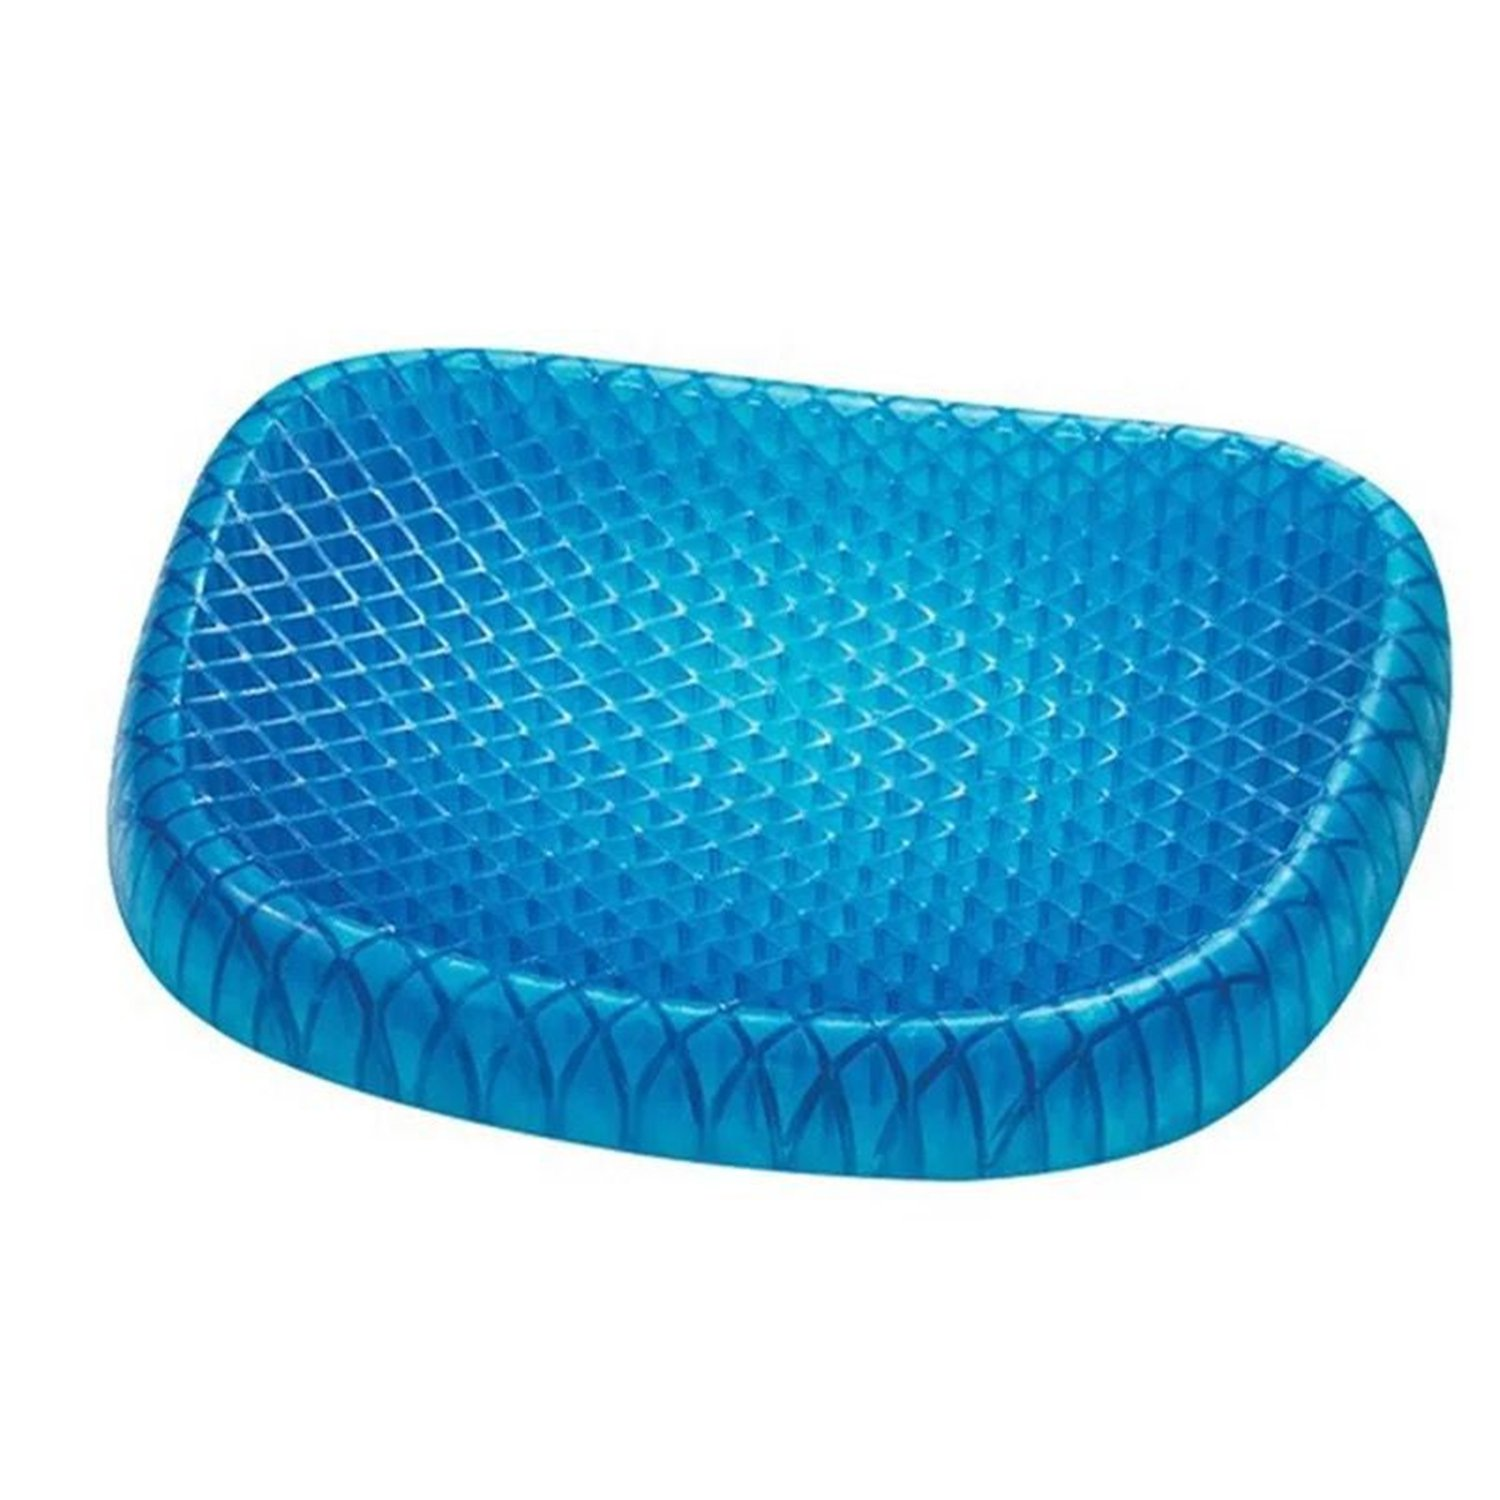 Egg Sitter Seat Cushion with Non-Slip Cover for Your Office Chair and Sitting on The Floor Gives Relief from Tailbone Pain FZAY Gel Seat Cushion Blue